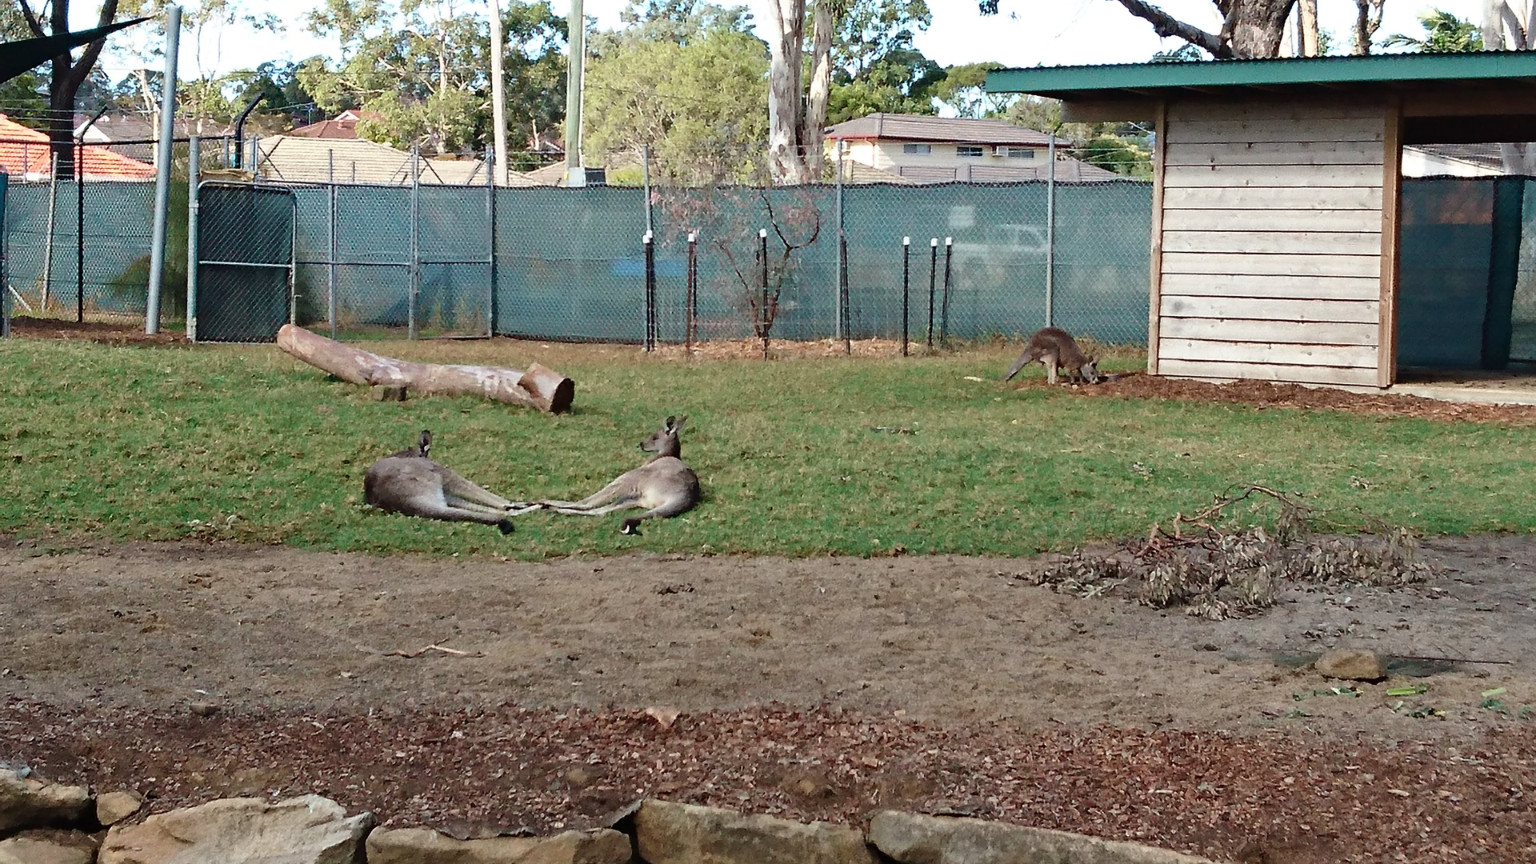 more Kangaroos bathing in the sun